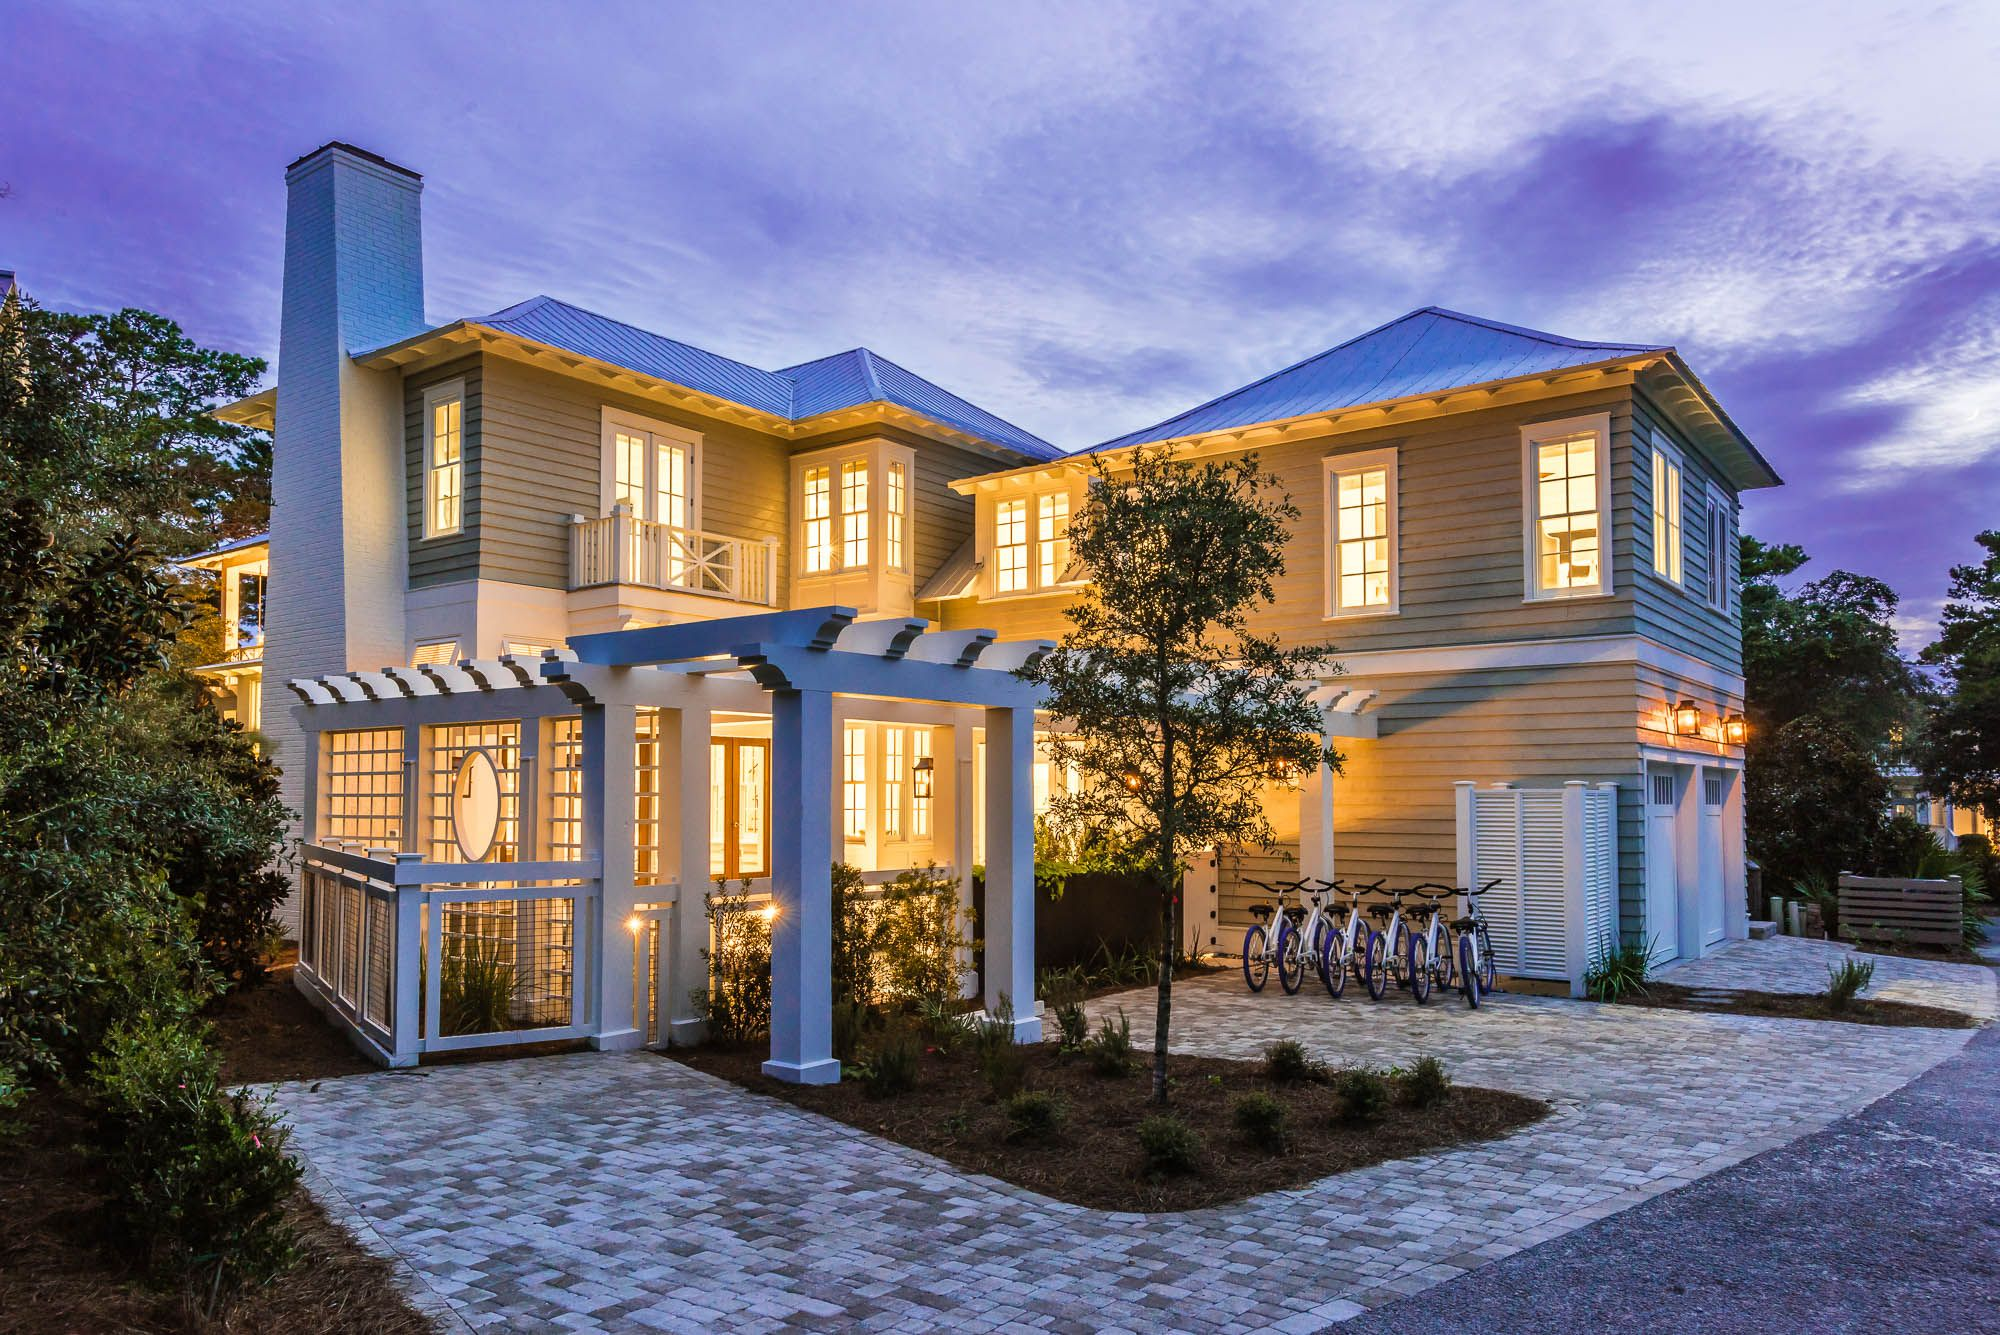 Consider Paradise Found From This Stunning Luxury Home In